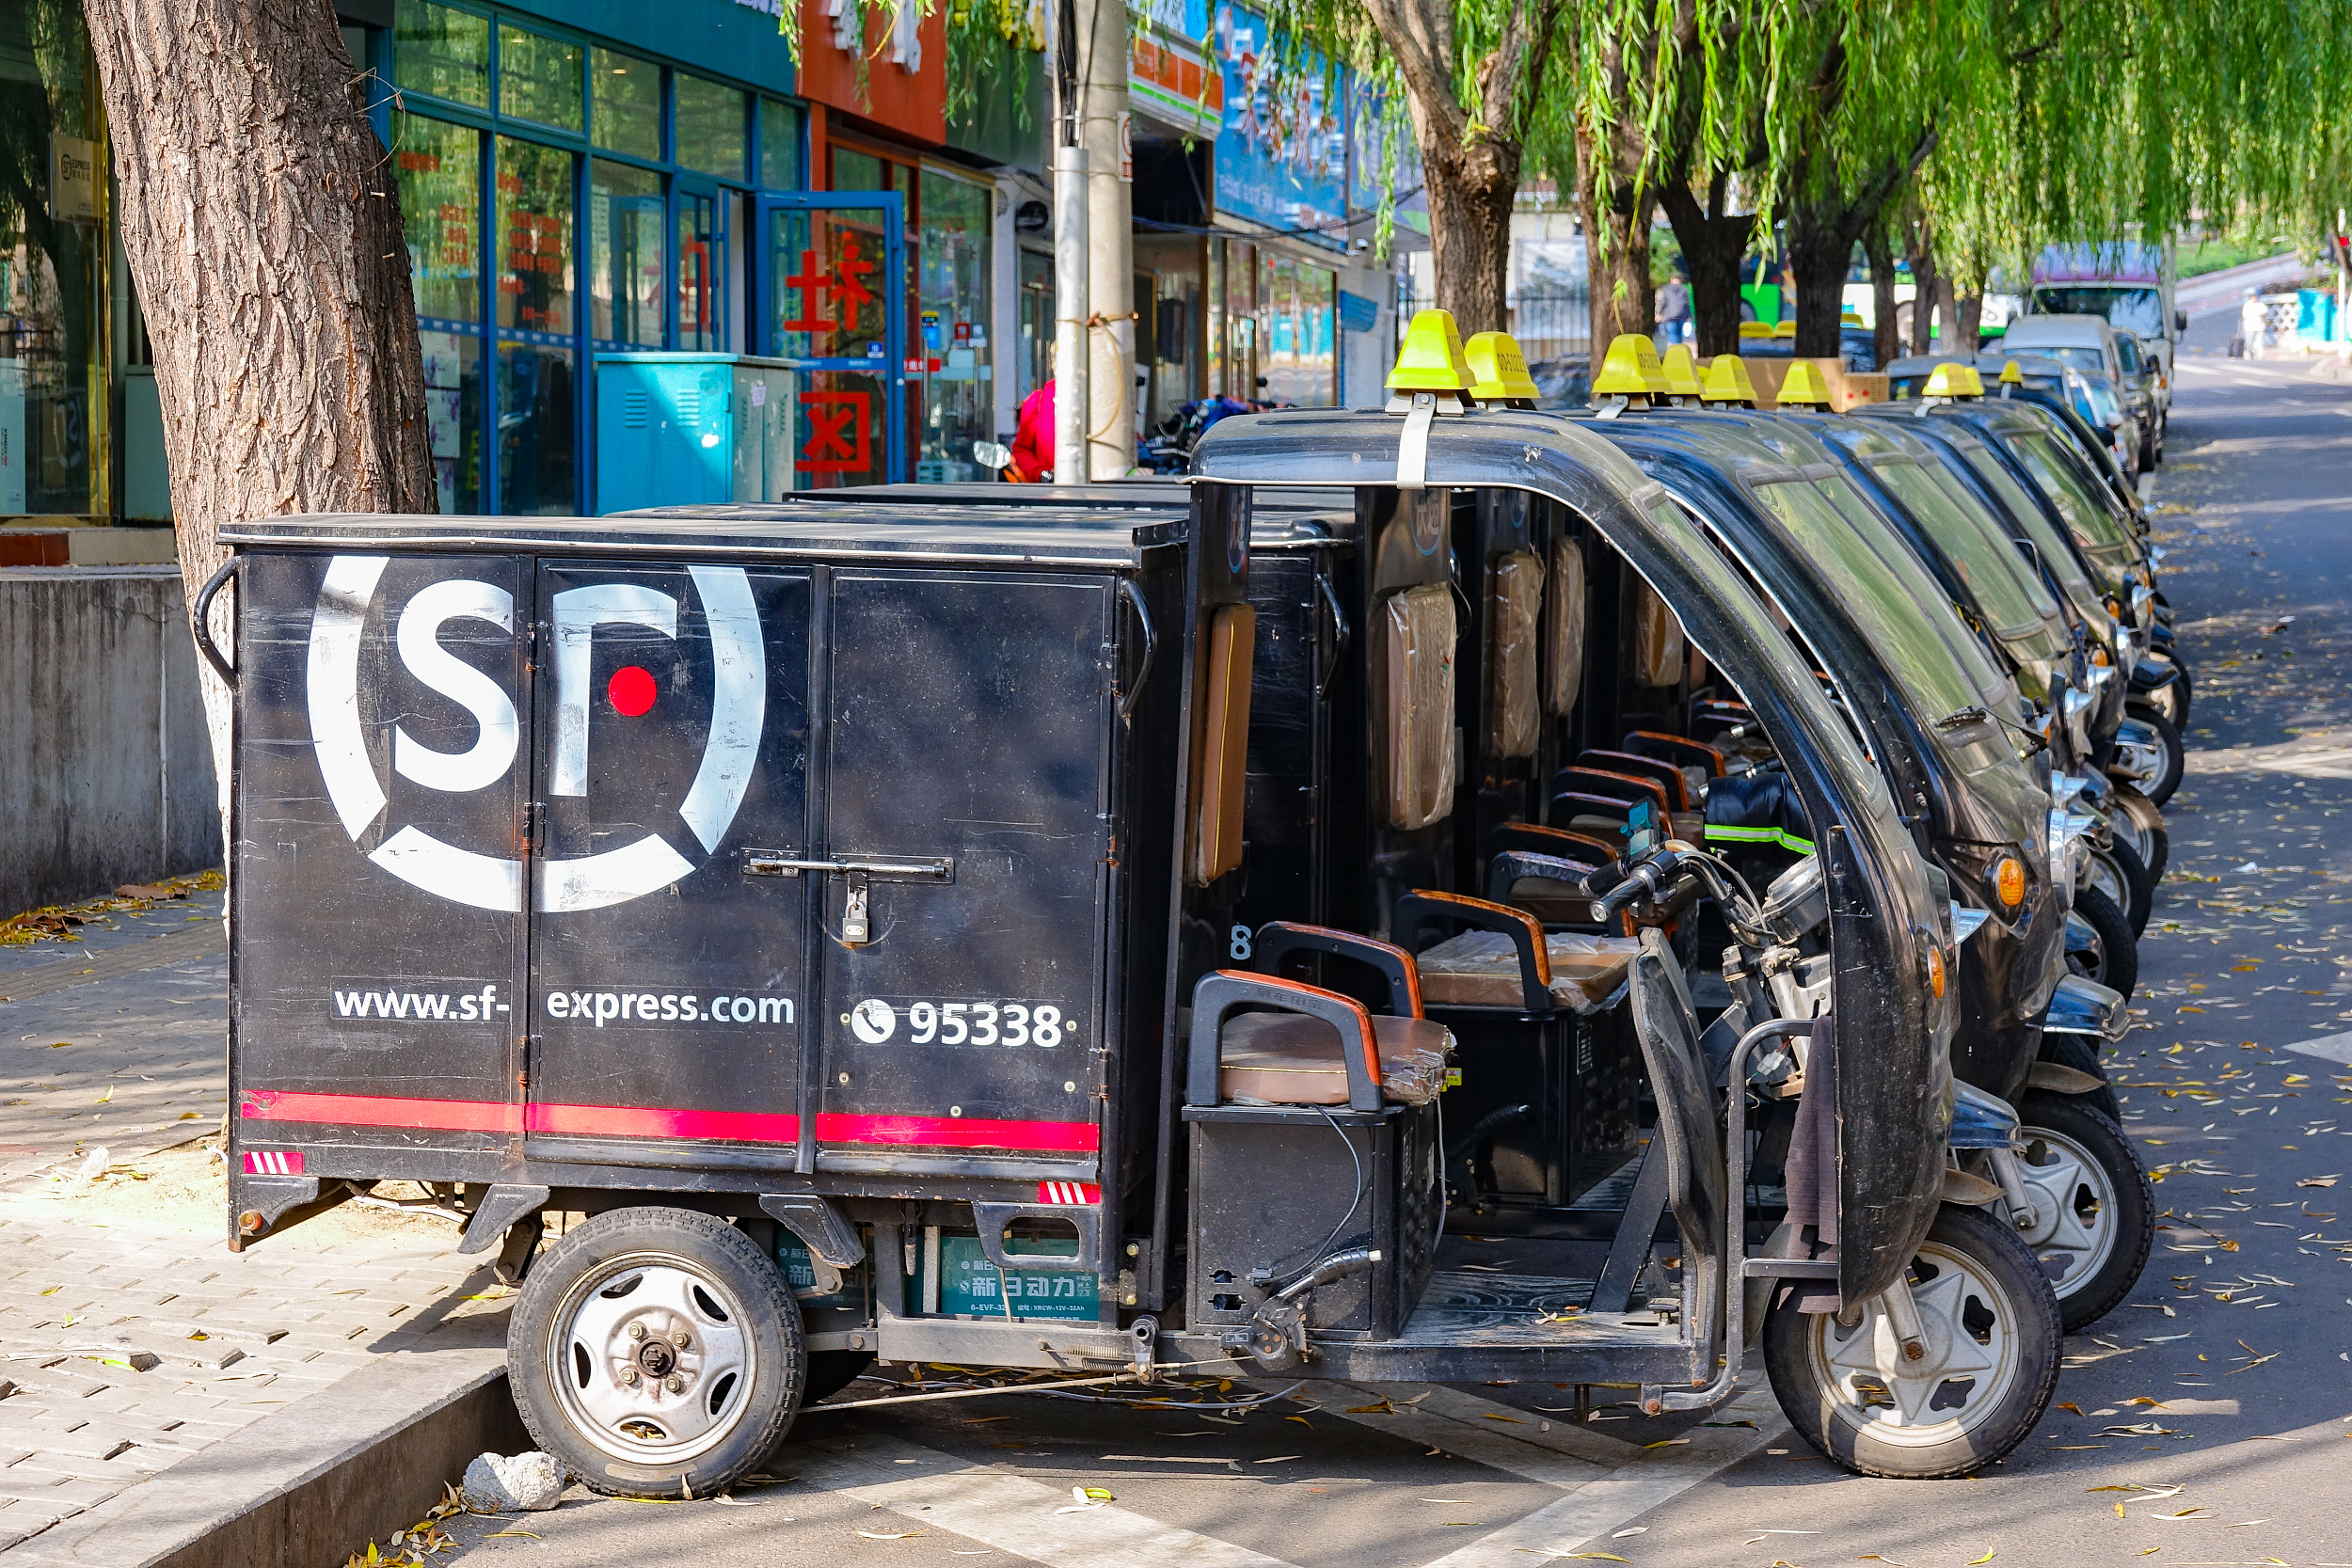 SF delivery vehicles in Qingdao, Shandong province, on Nov. 16, 2019. Photo: VCG